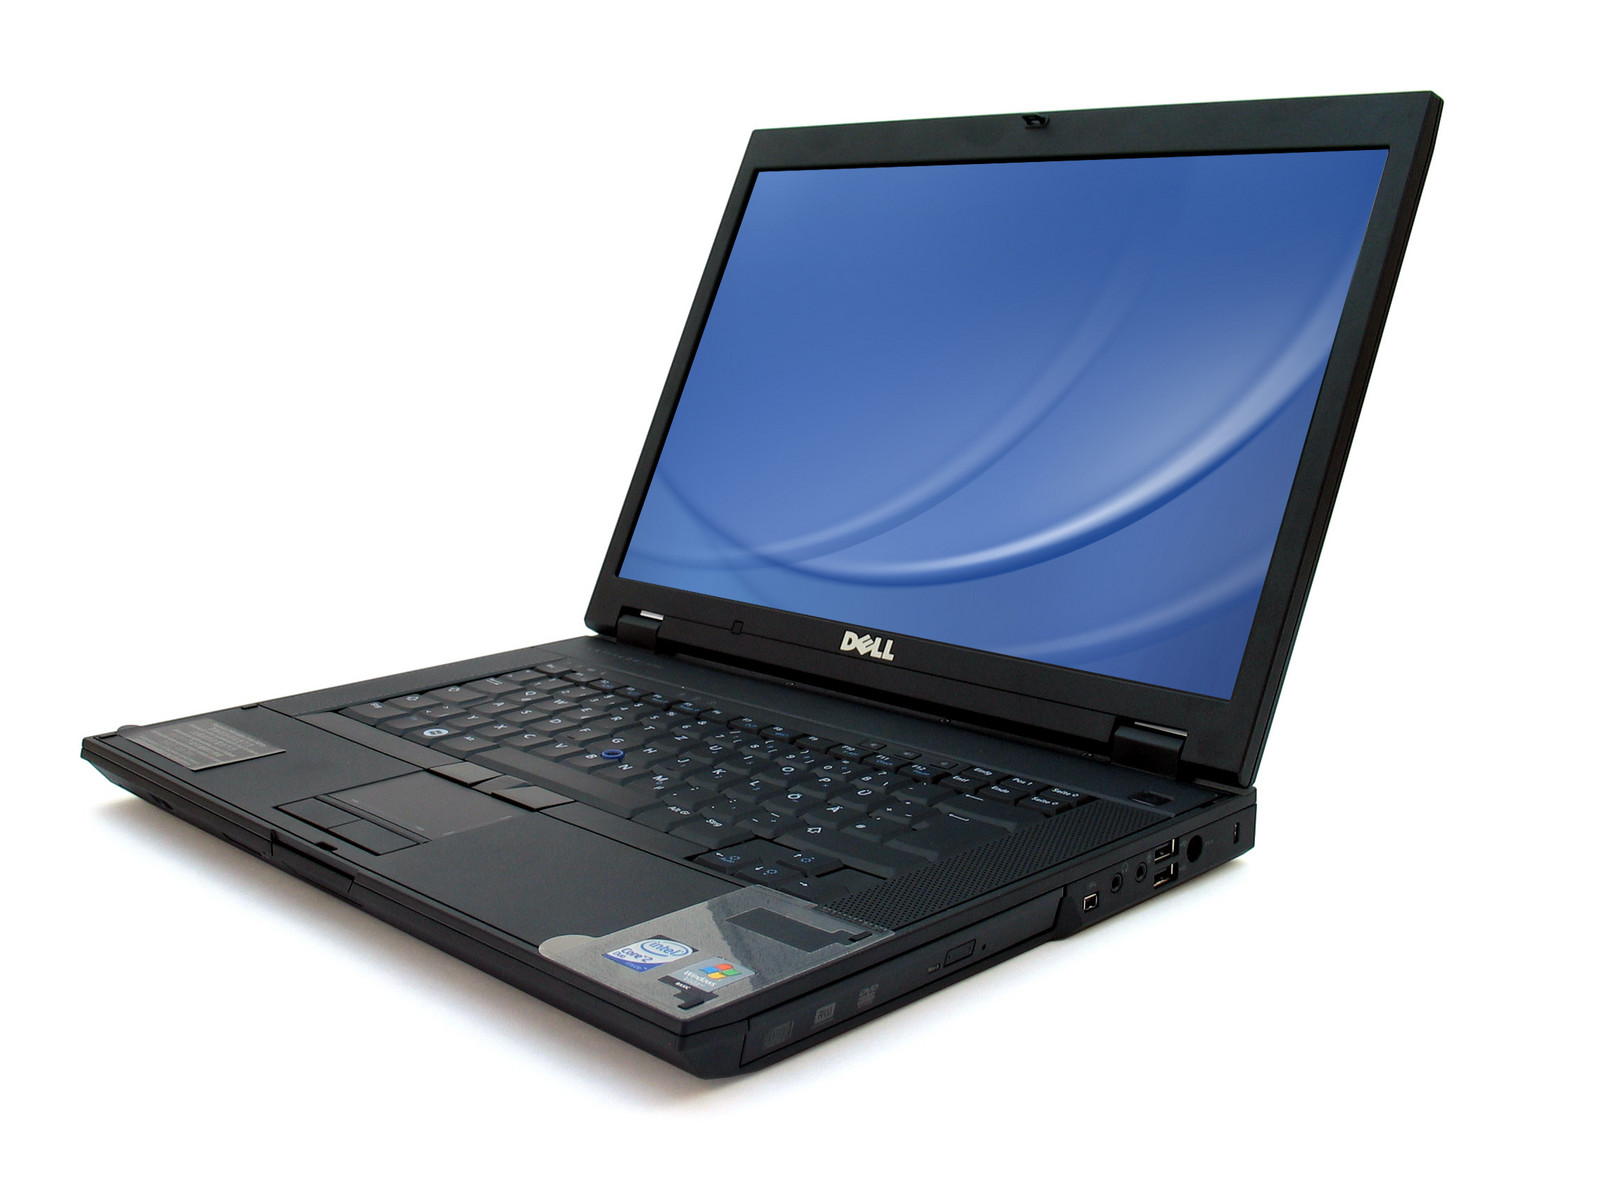 DELL LATITUDE E5500 BLUETOOTH WINDOWS DRIVER